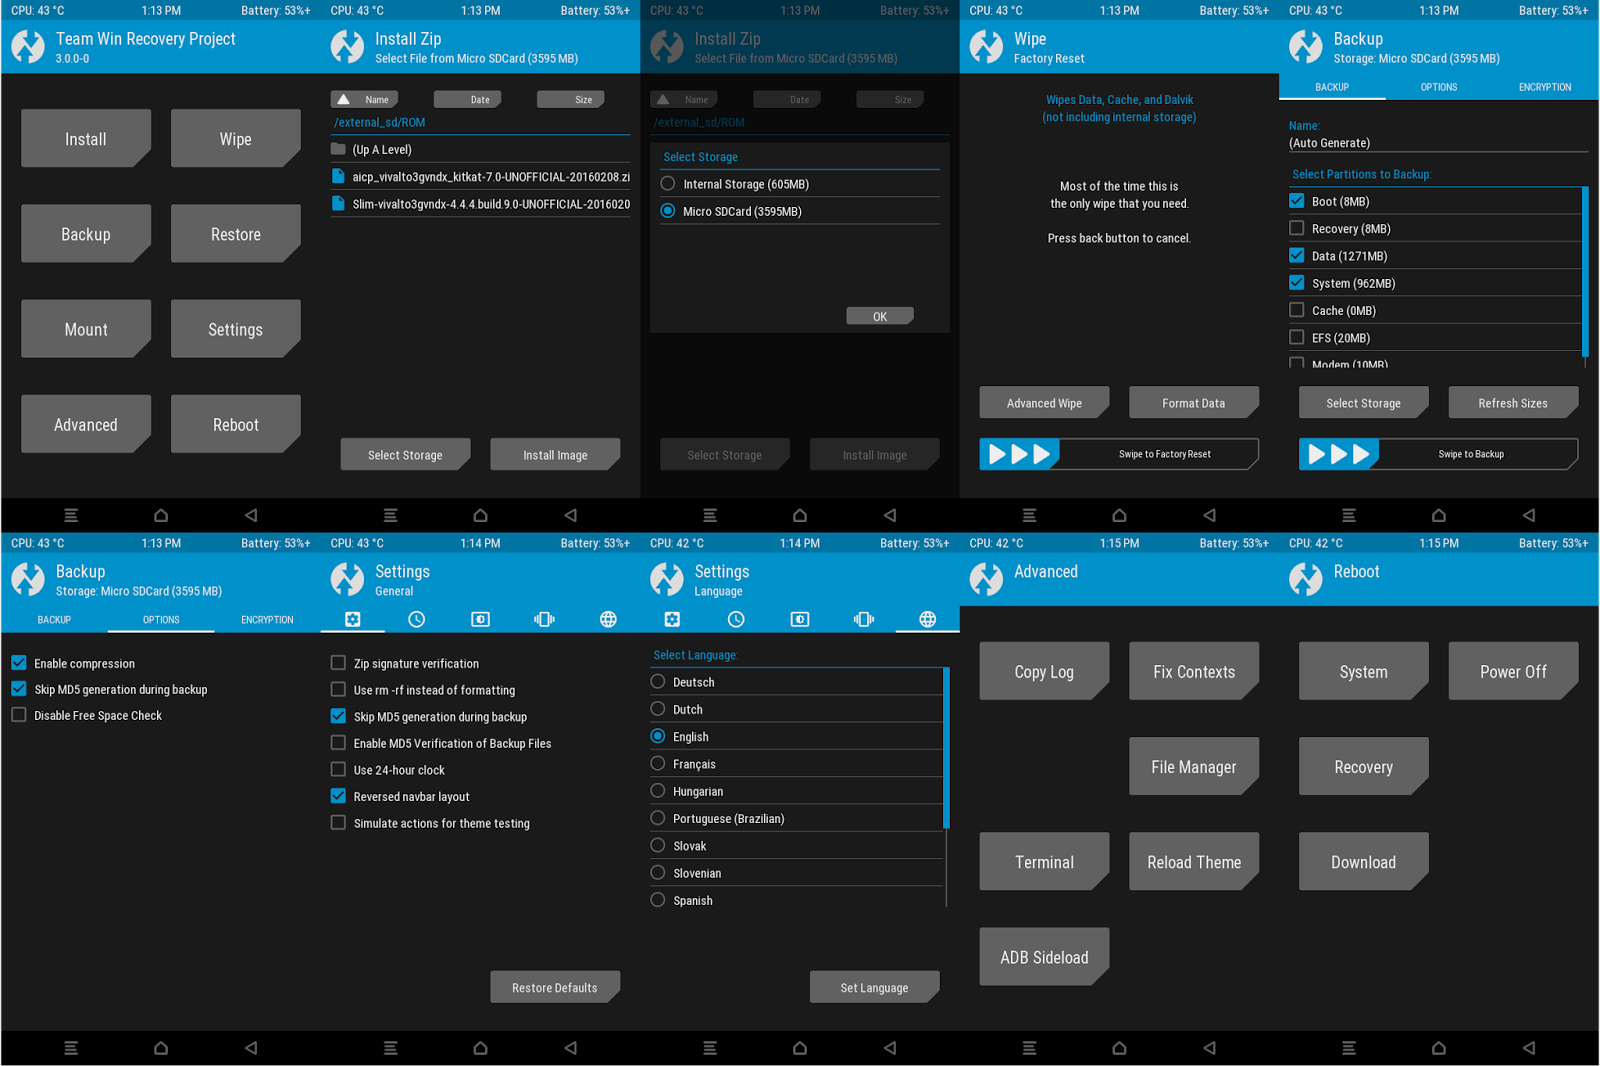 Recovery][TWRP] New TWRP Recovery 3 0 2 for MT6580 - GF4 Development